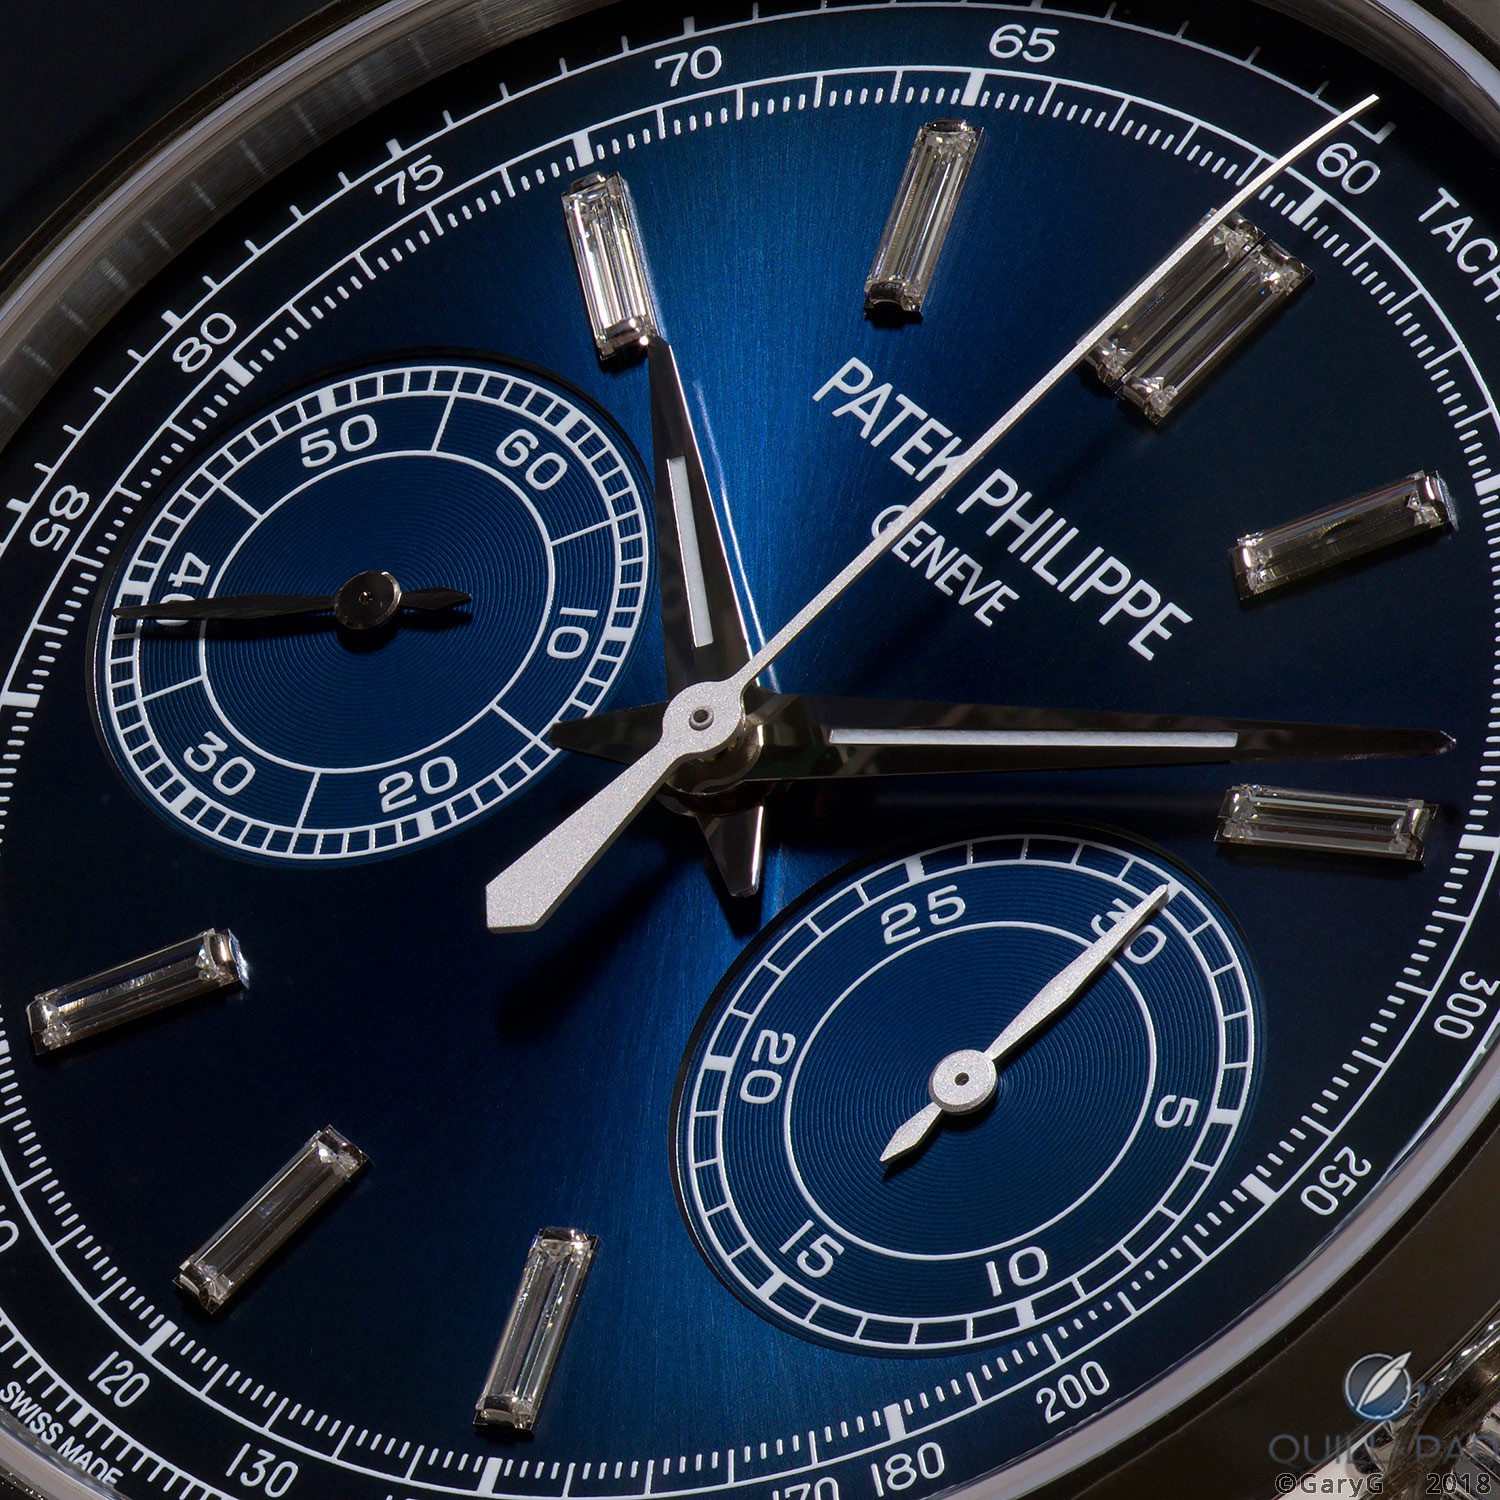 Dressy and clean: Patek Philippe Reference 5170P